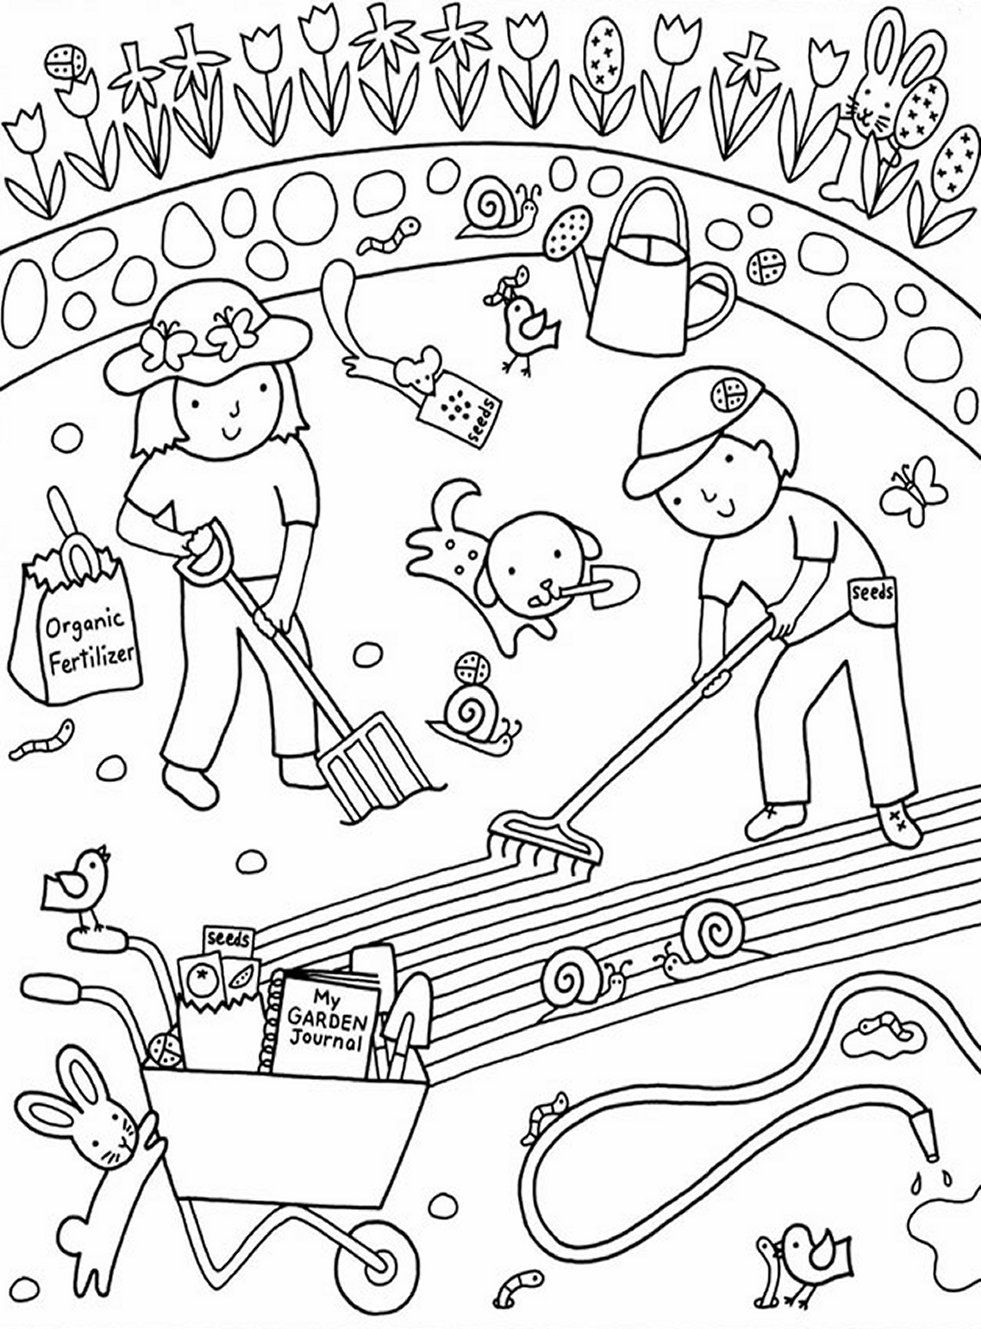 coloring pages free horticulture - photo#3